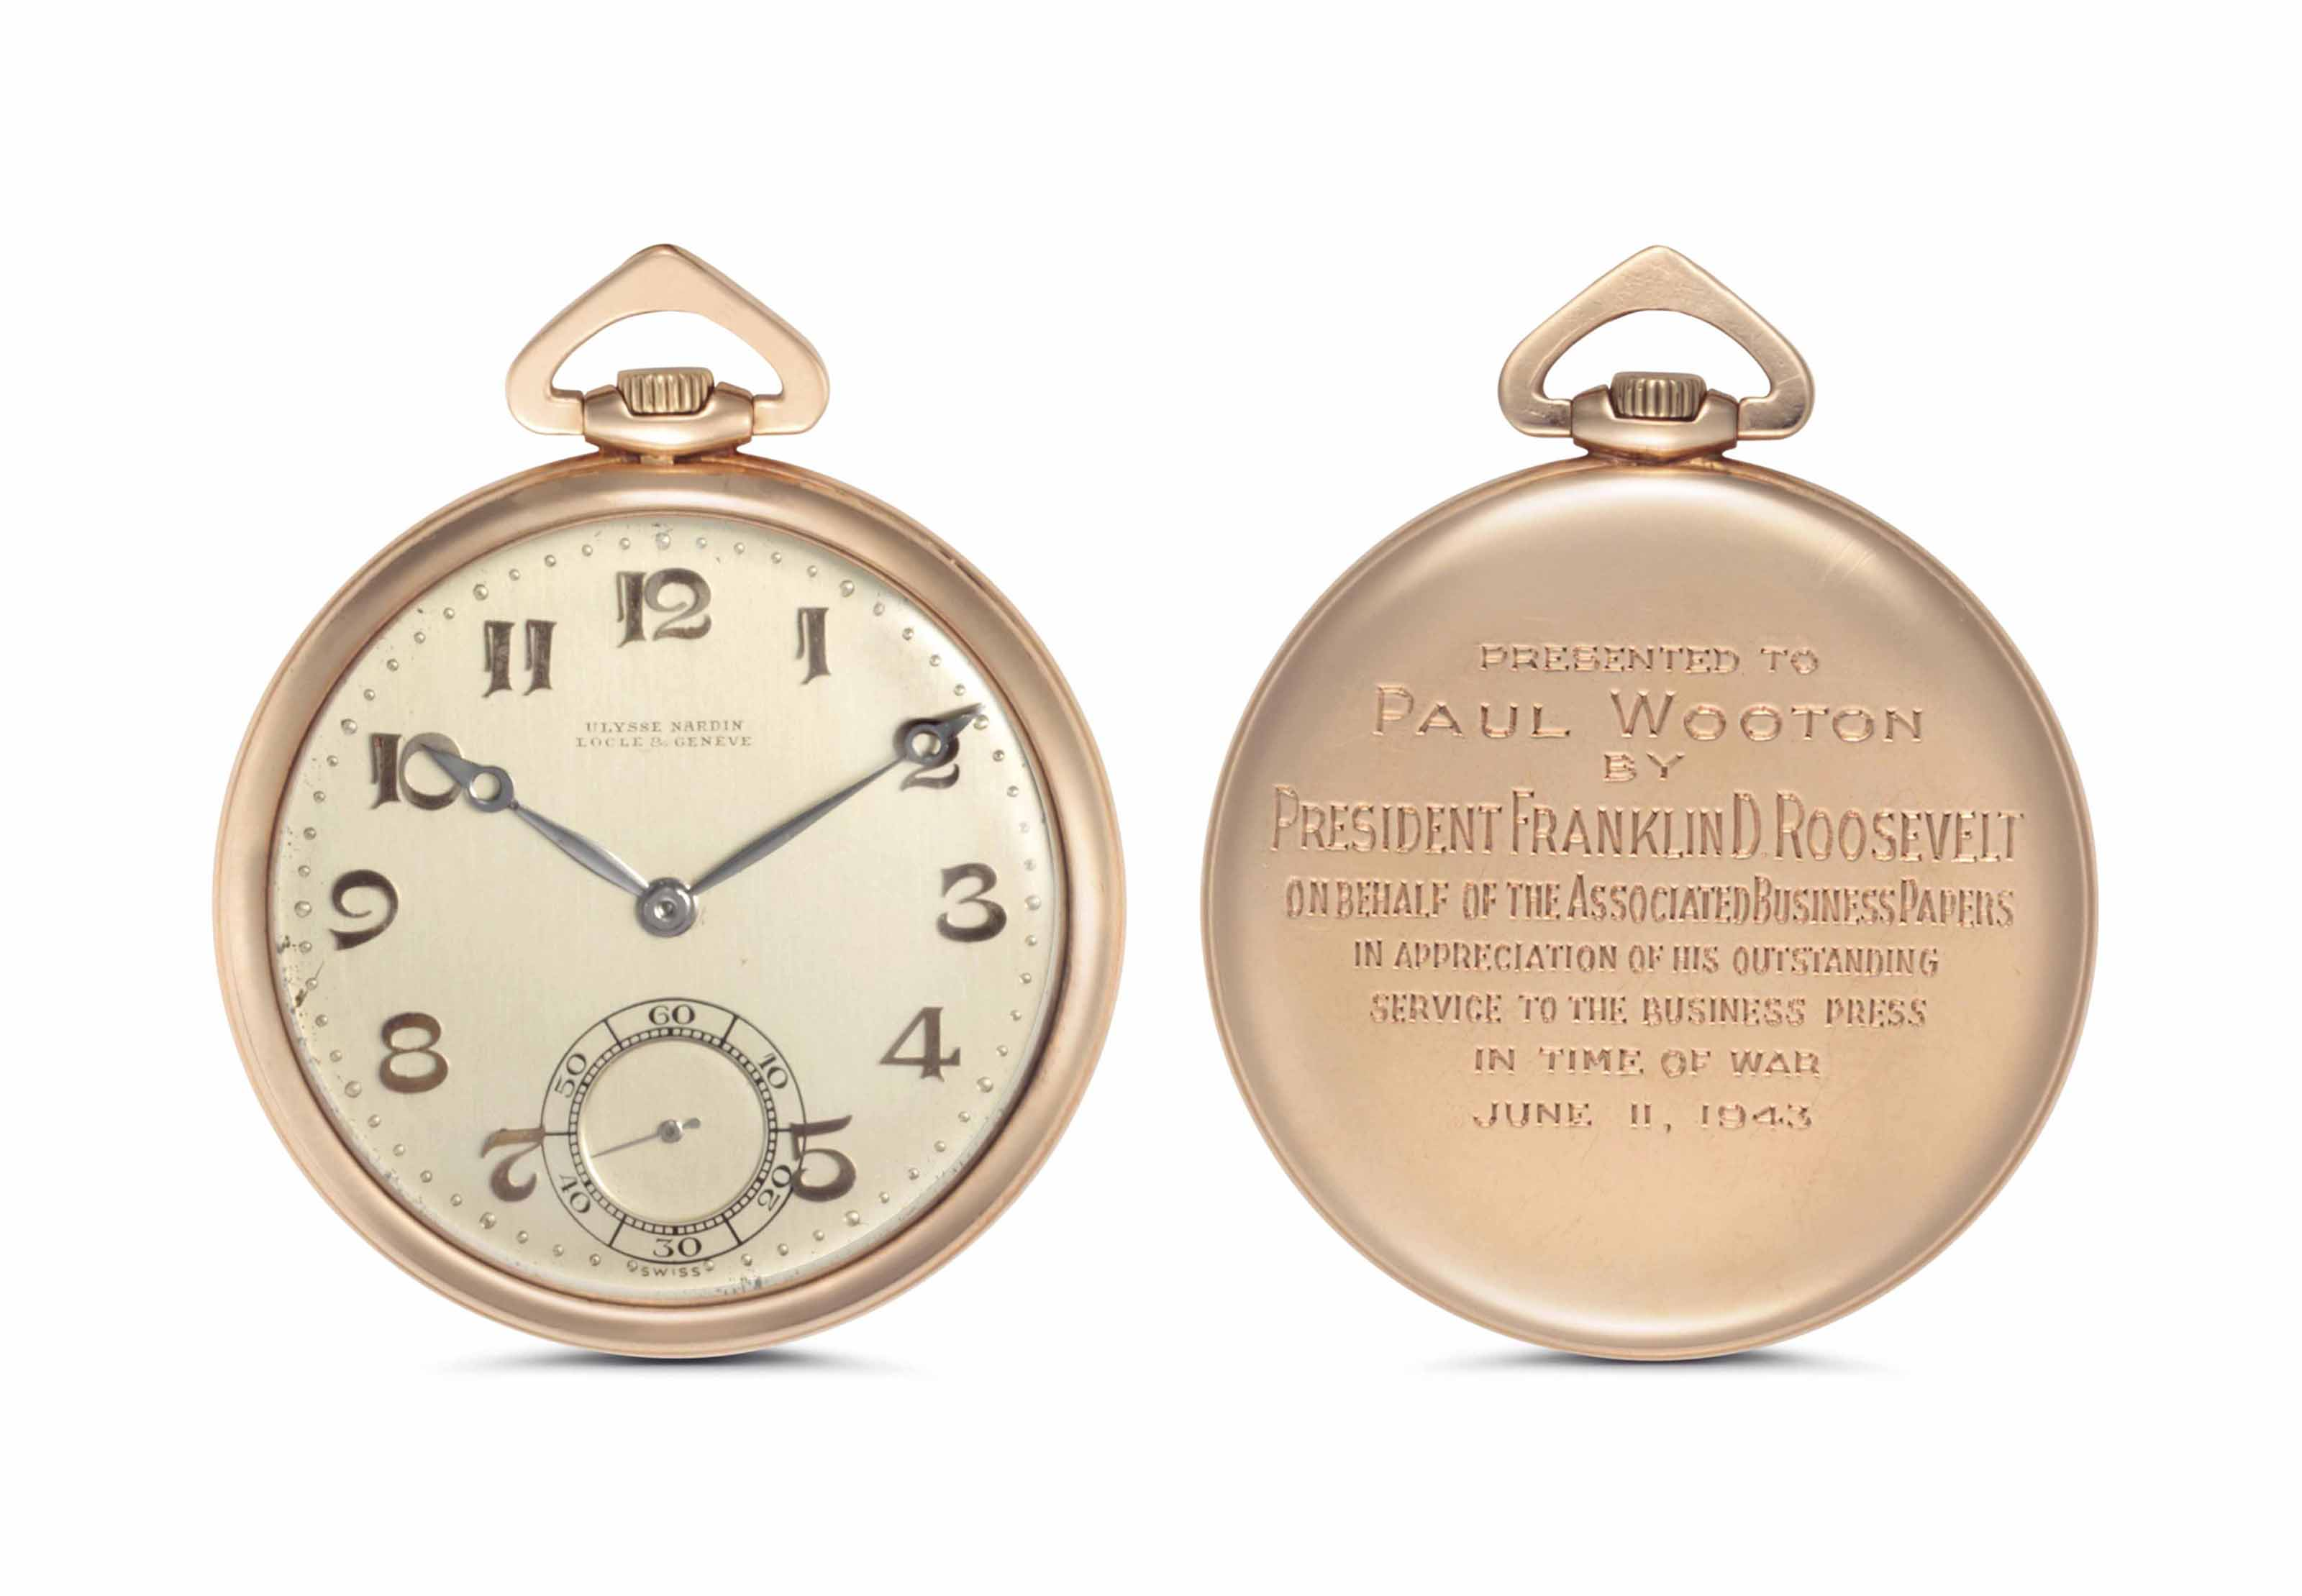 Ulysse Nardin. A Fine and Historically Important 14k Pink Gold Openface Keyless Lever Pocket Watch, Presented by President Franklin D. Roosevelt